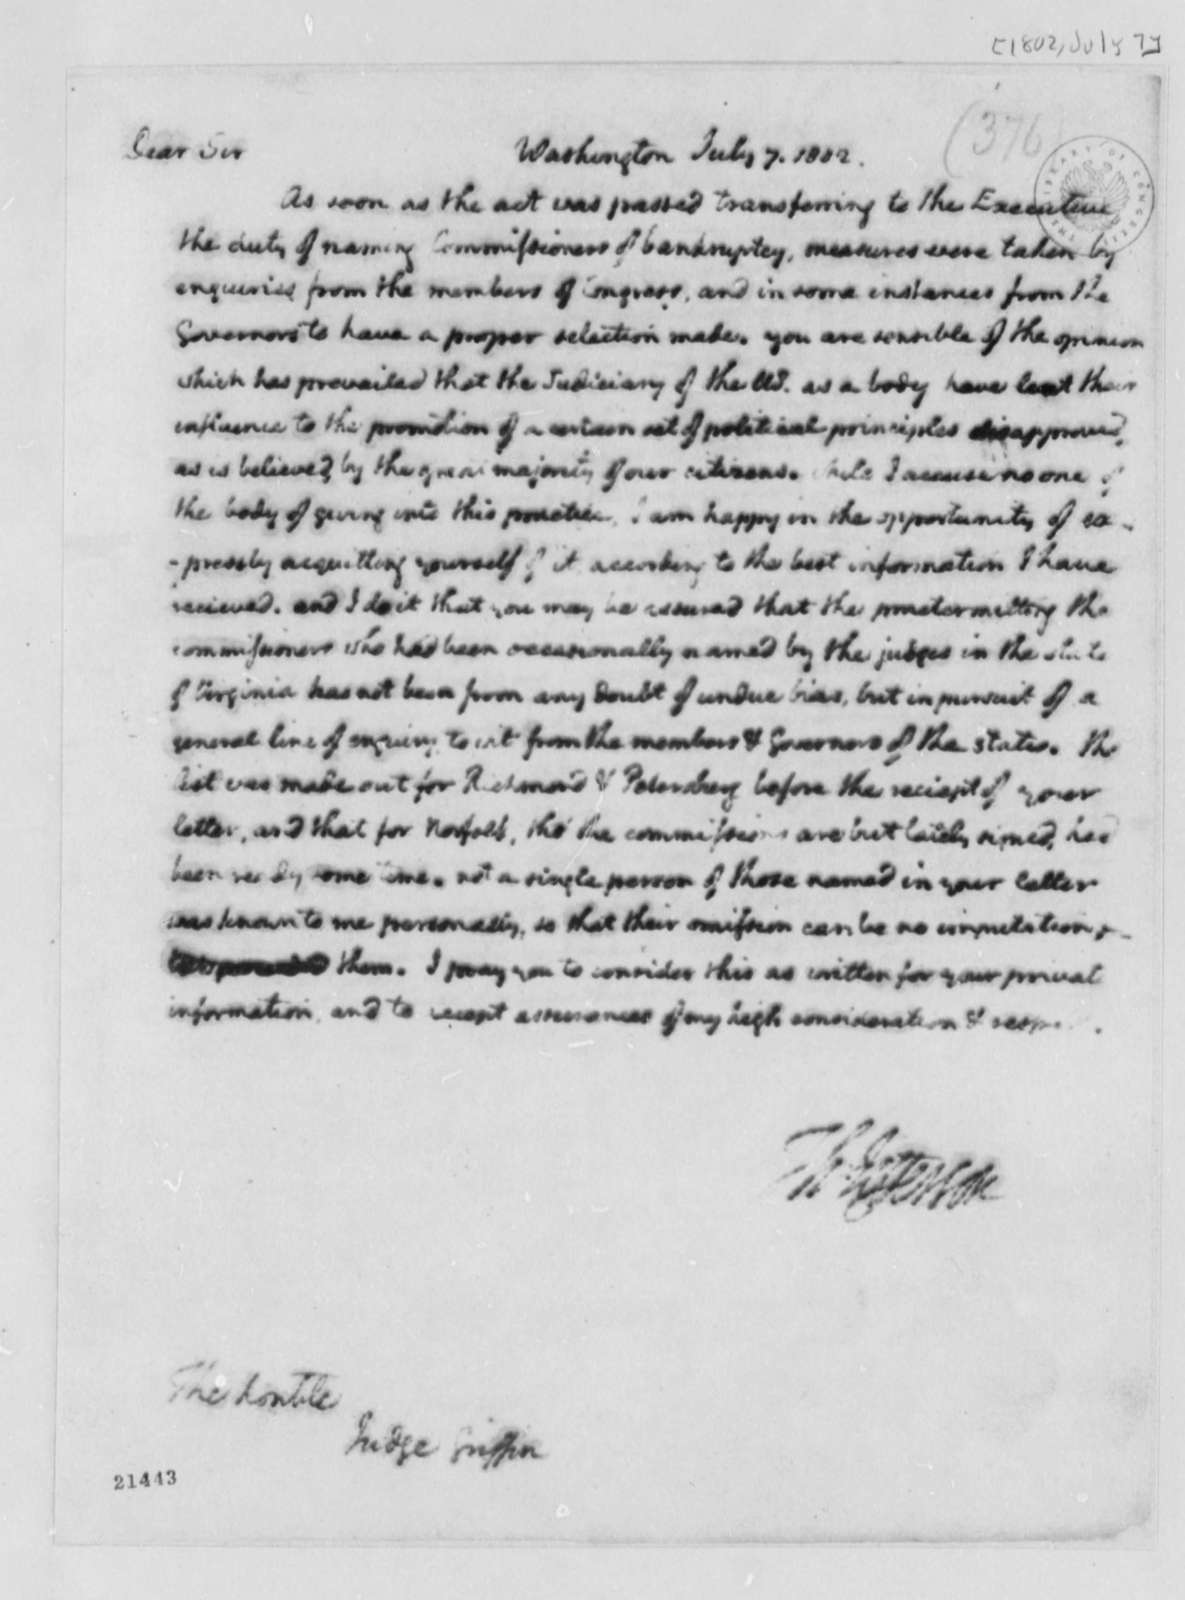 Thomas Jefferson to Cyrus Griffin, July 7, 1802